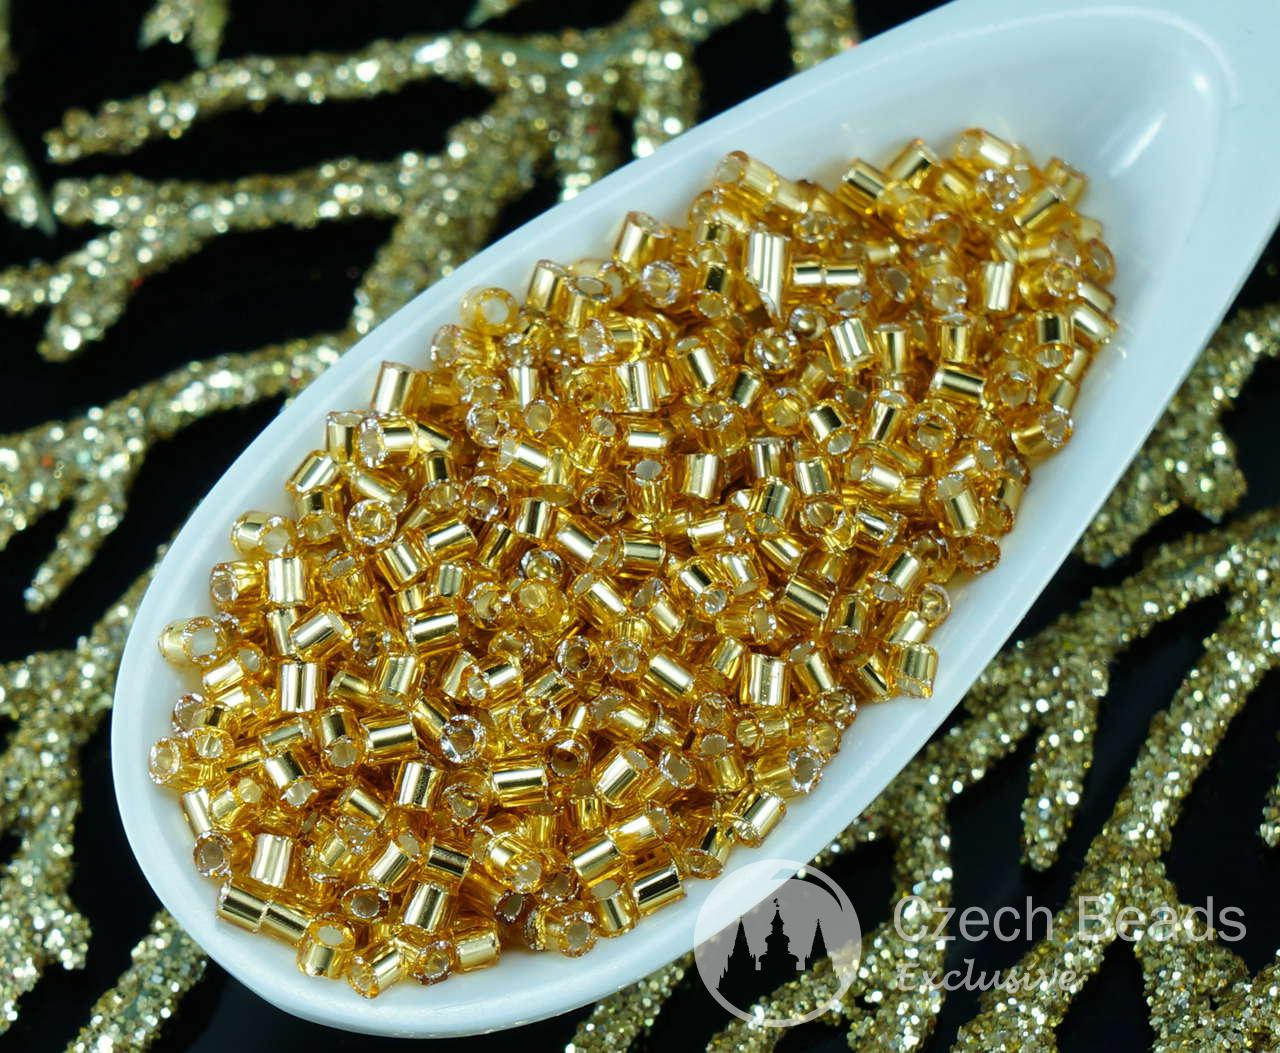 20g Yellow Gold Silver Lined Czech Glass Tube Seed Beads PRECIOSA Rocaille Spacer 1.7mm Approximately 2002pcs for $2.44 from Czech Beads Exclusive